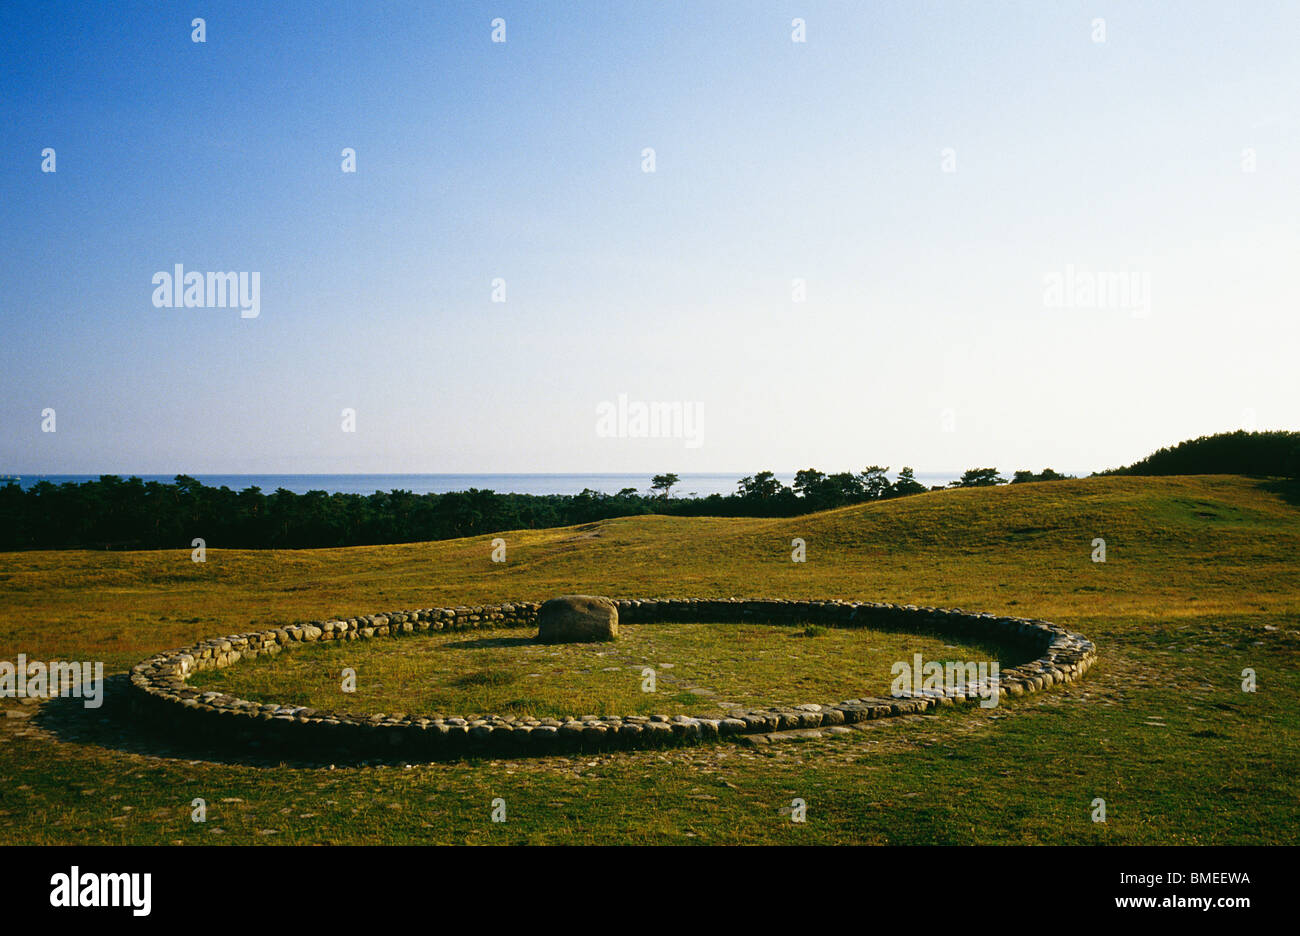 View of farm - Stock Image